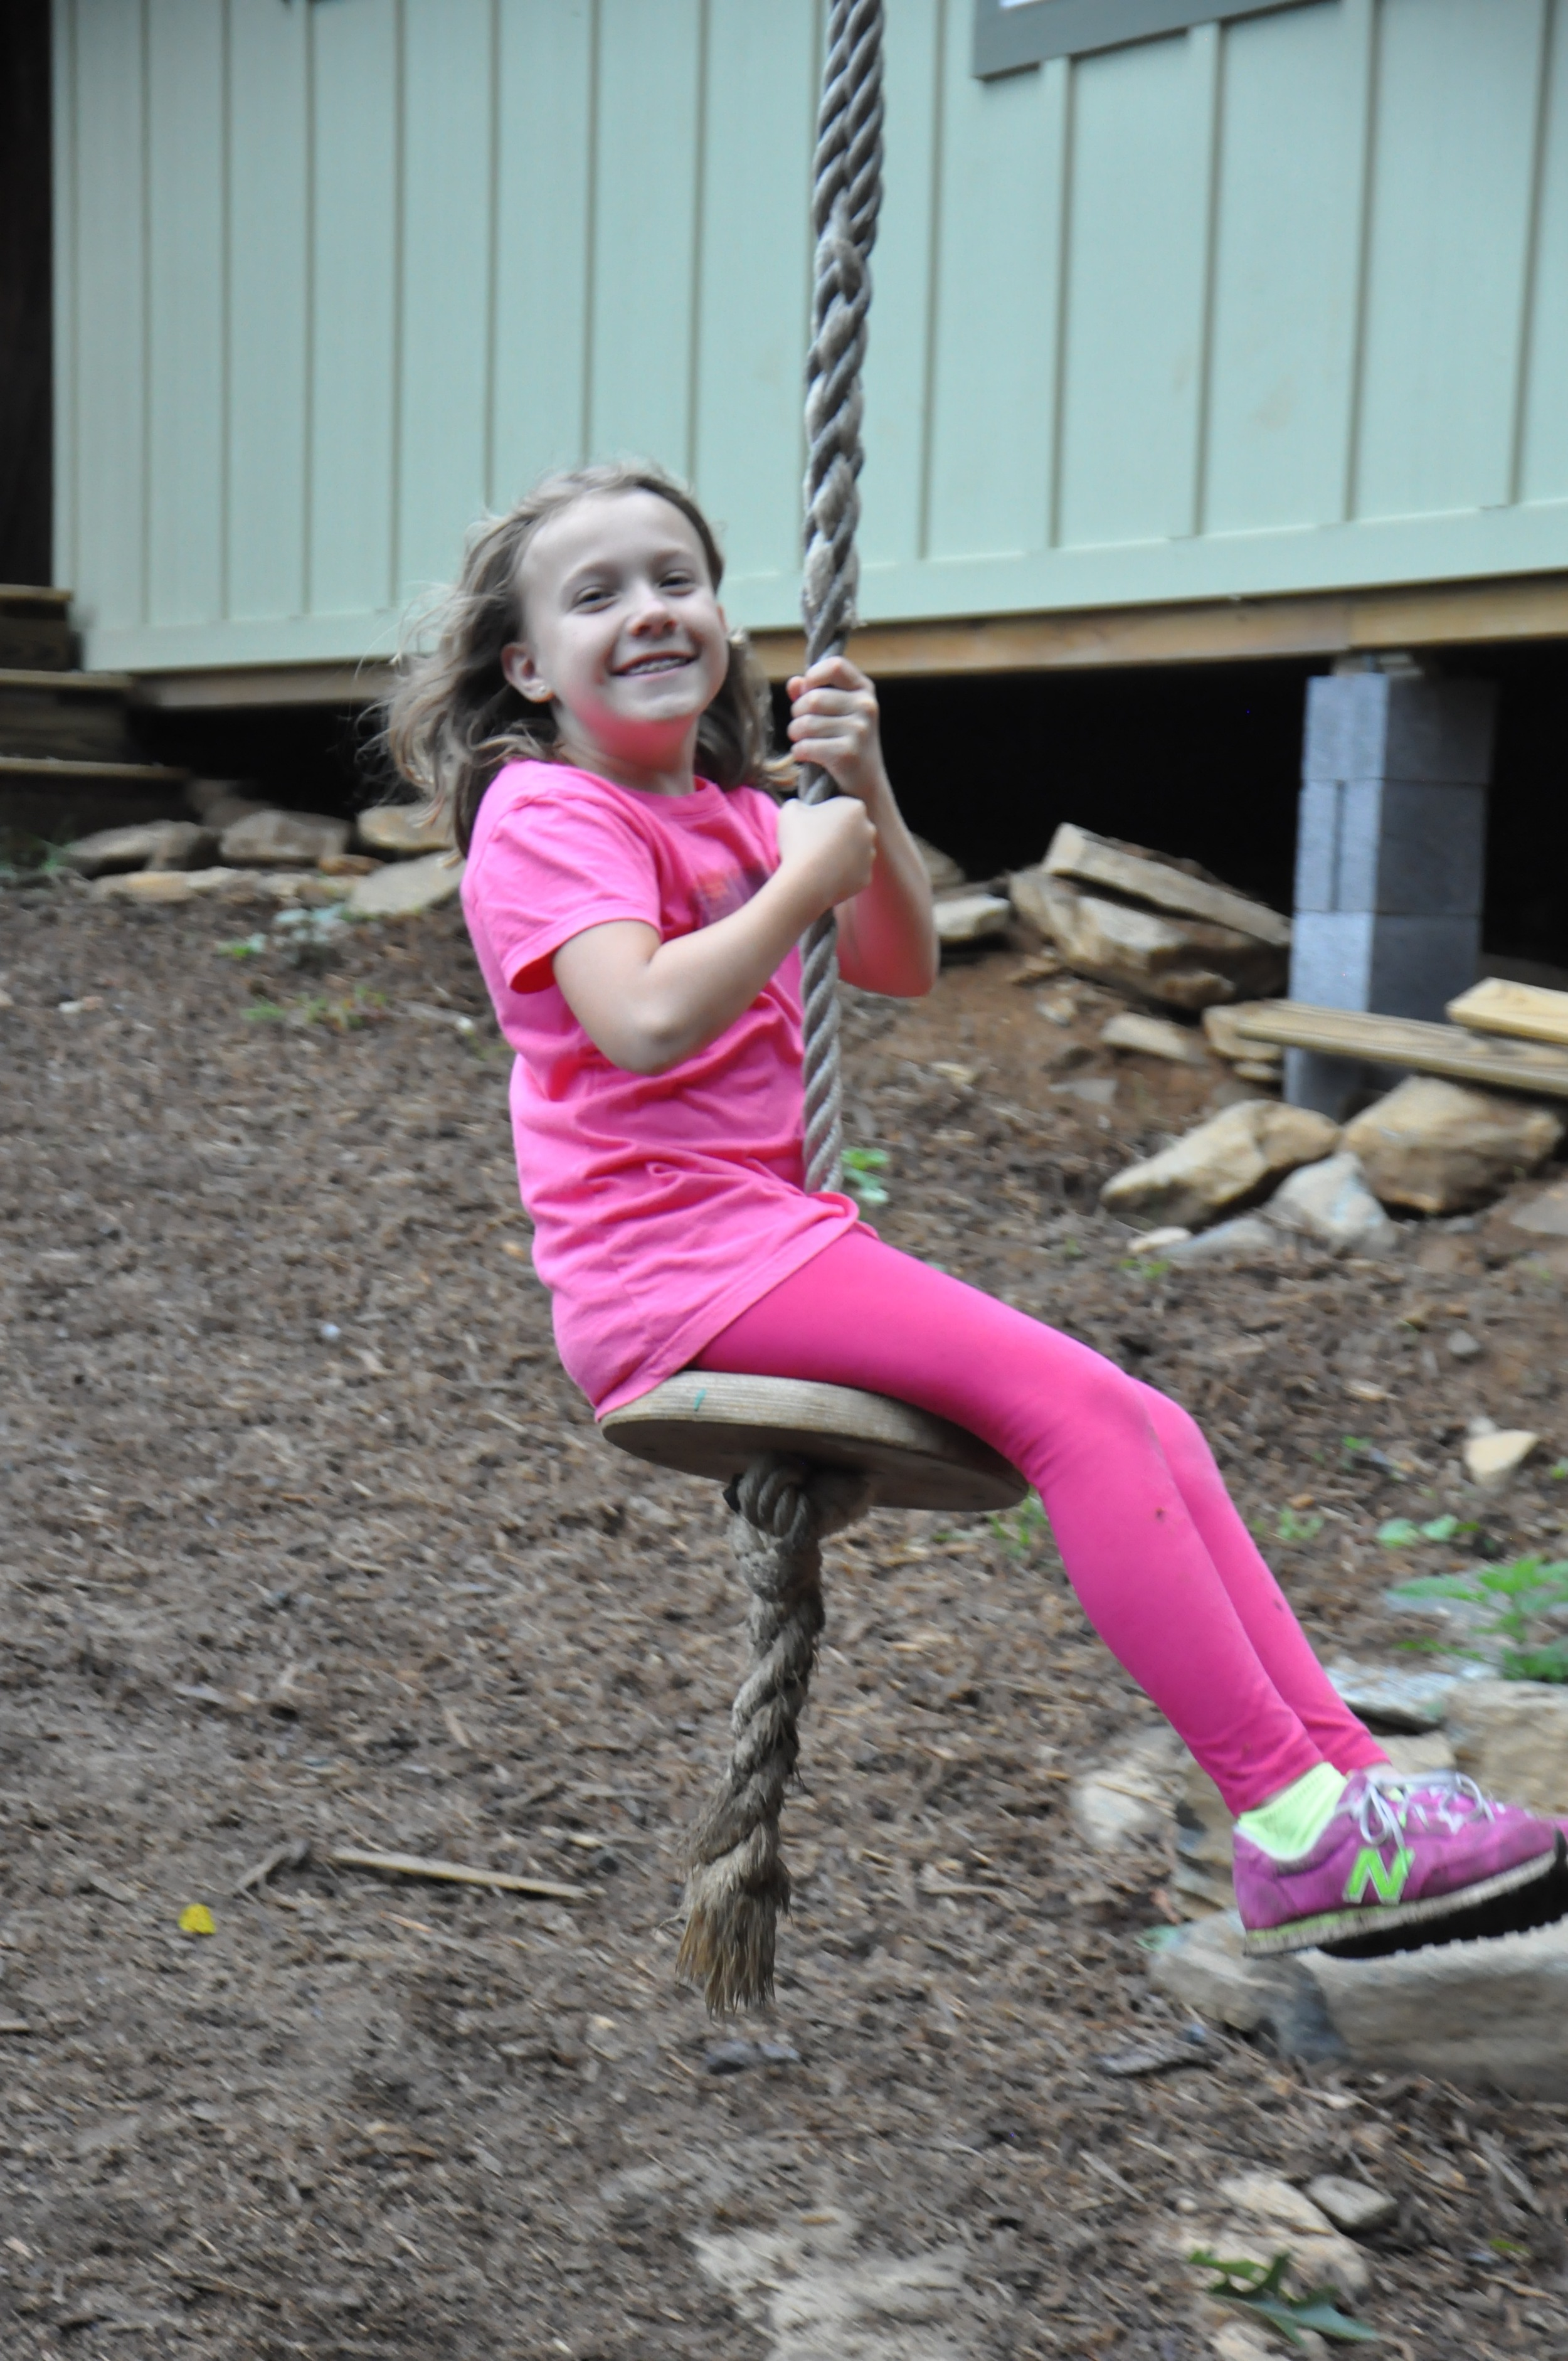 abigail-is-ziping-through-her-time-at-camp.jpg